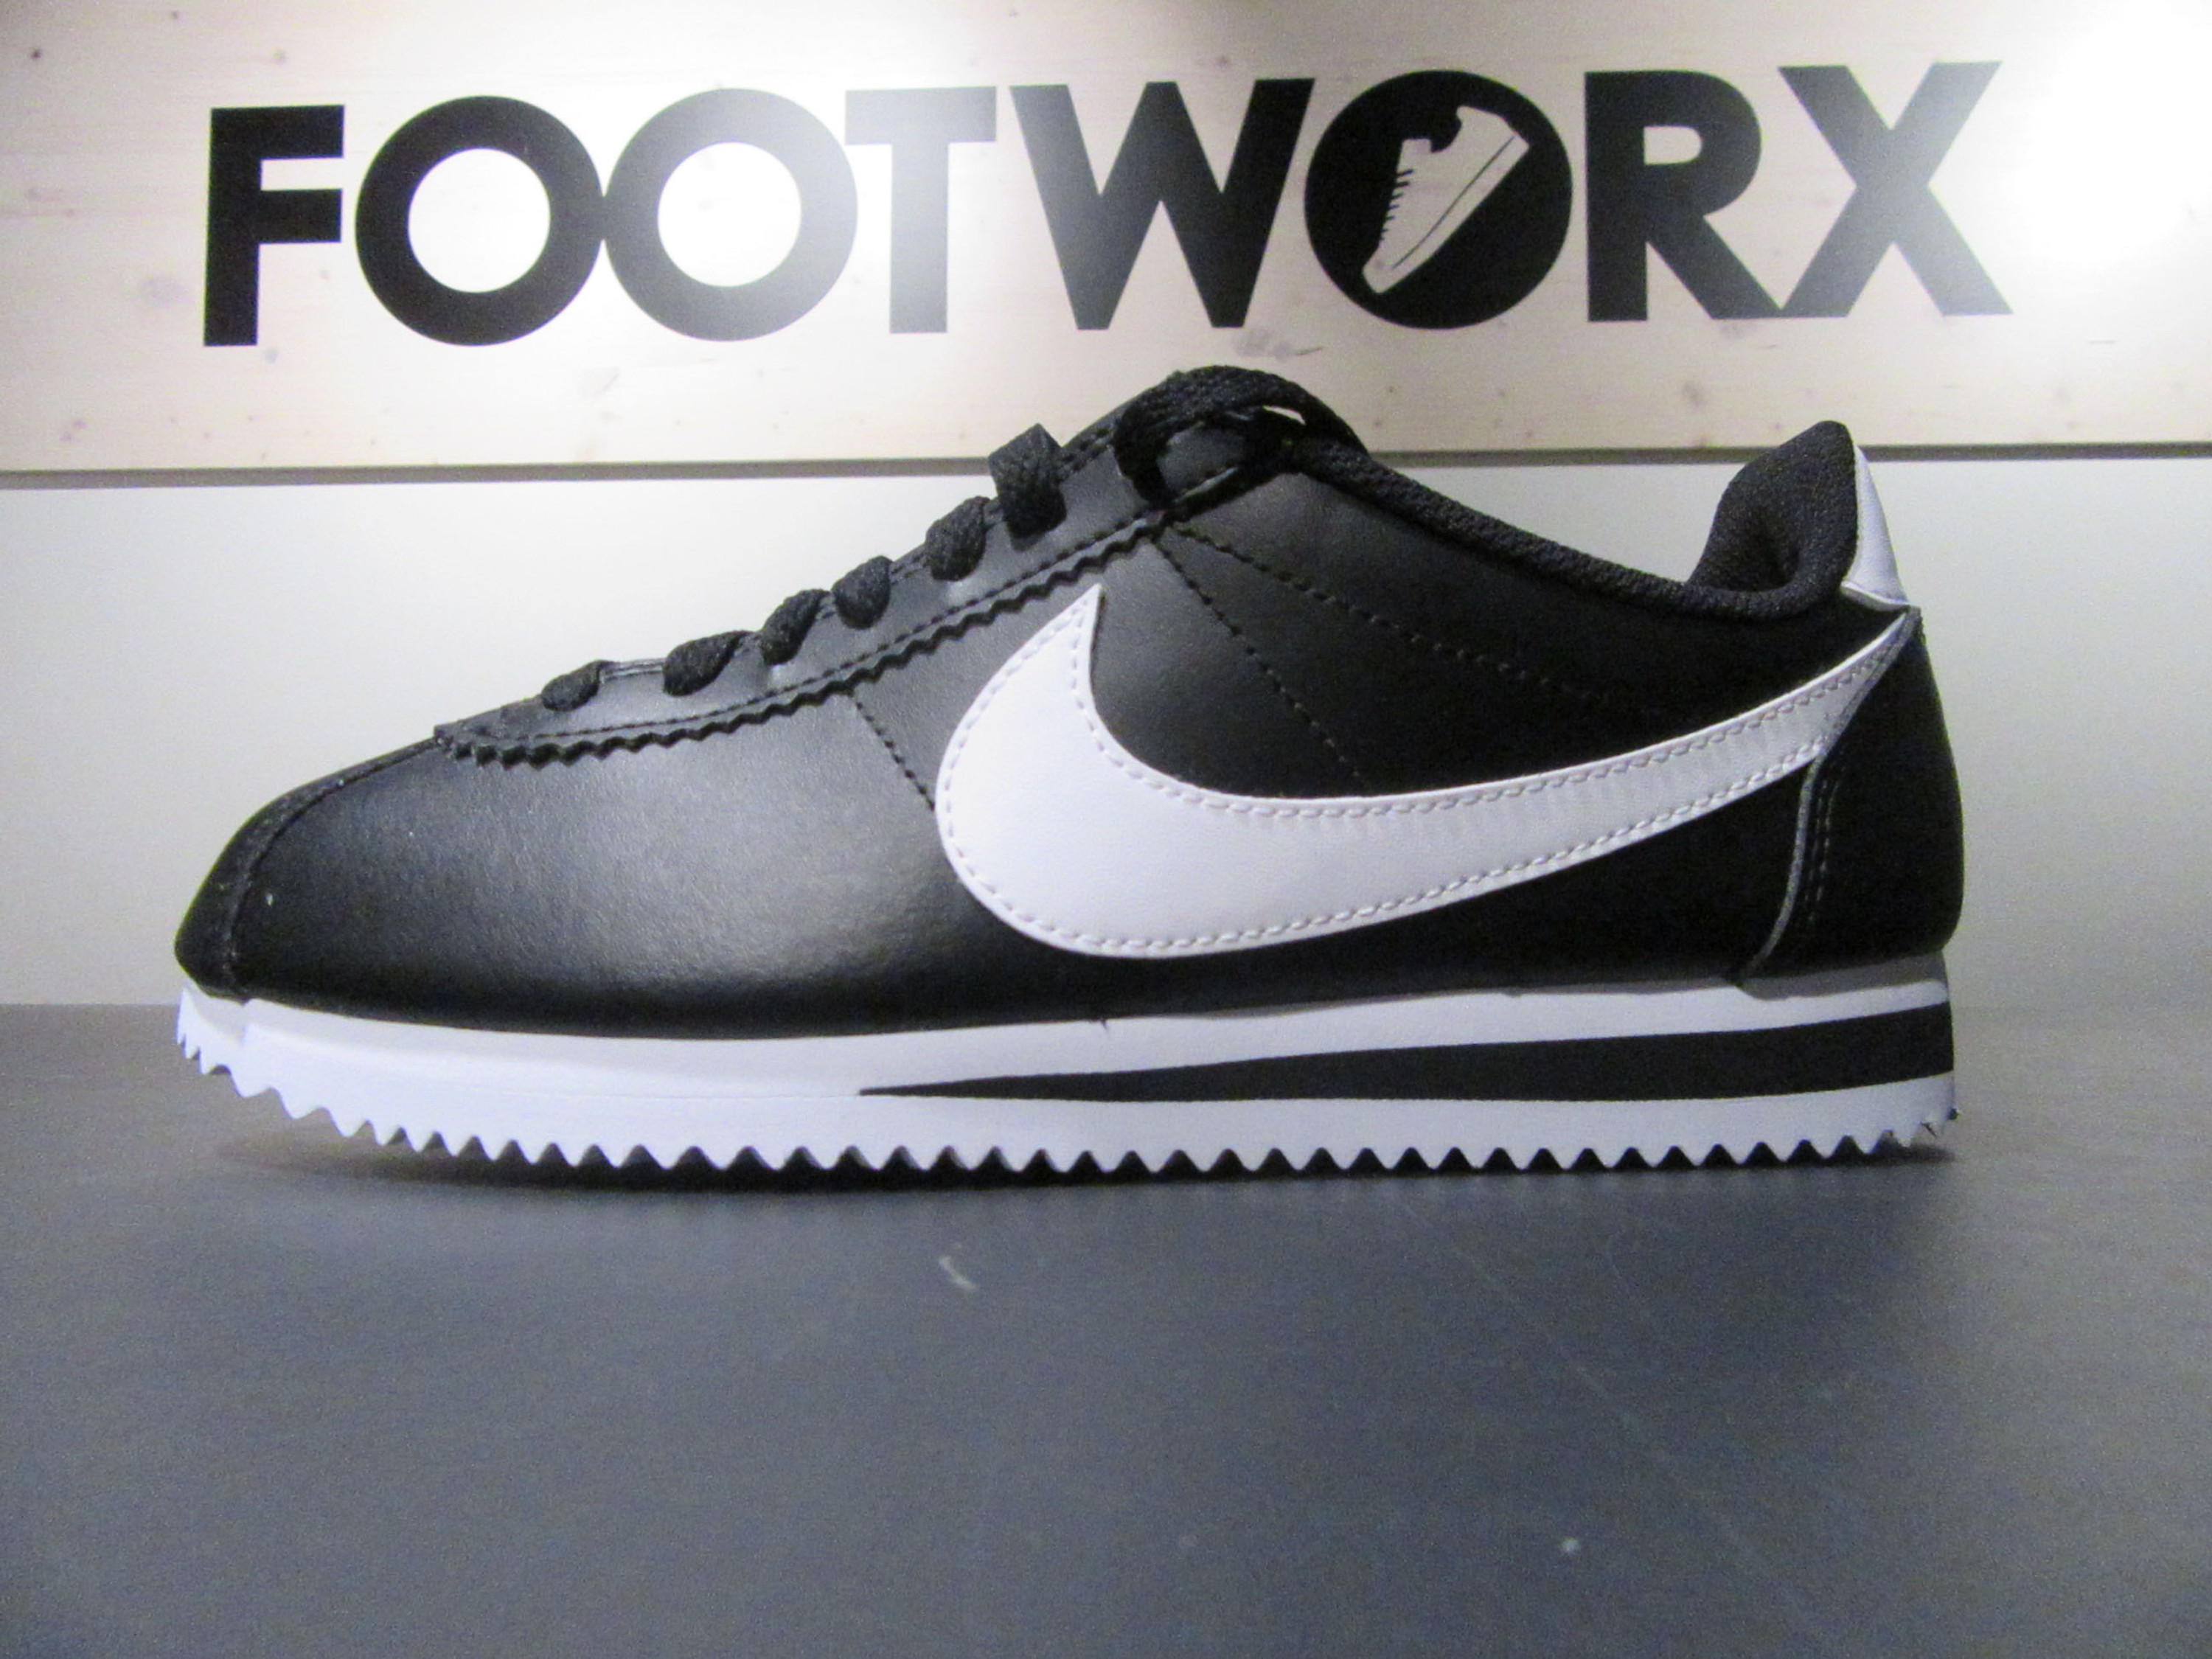 sale retailer bccfe 423bf Nike Classic Cortez Leather RetroVintage Sneakers in schwarzweiss für  Damen